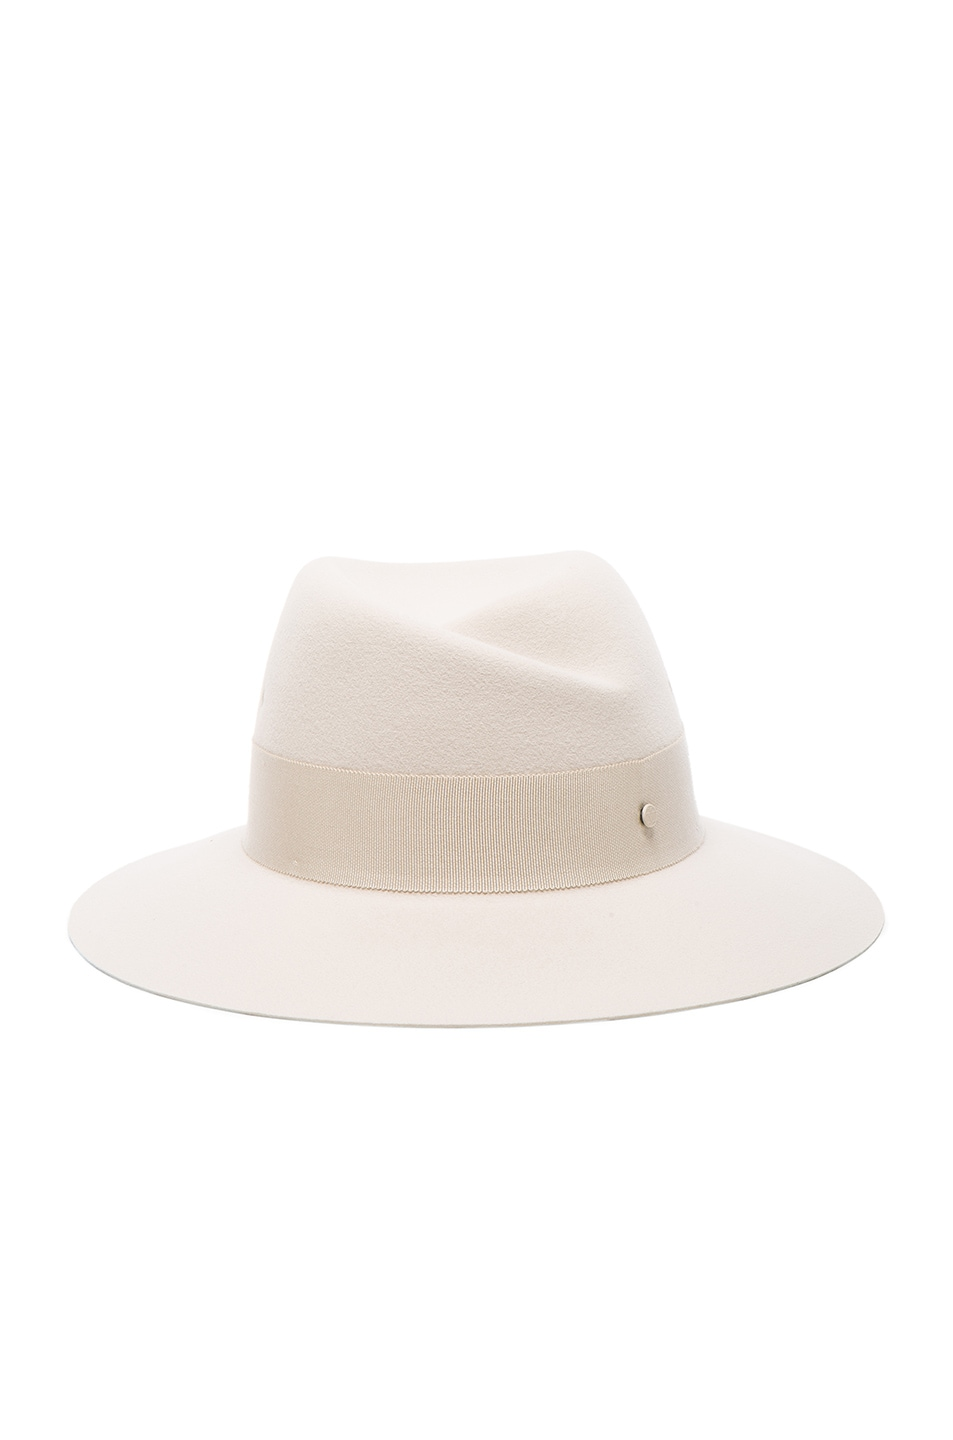 Image 1 of Maison Michel Virginie Hat in White Chalk